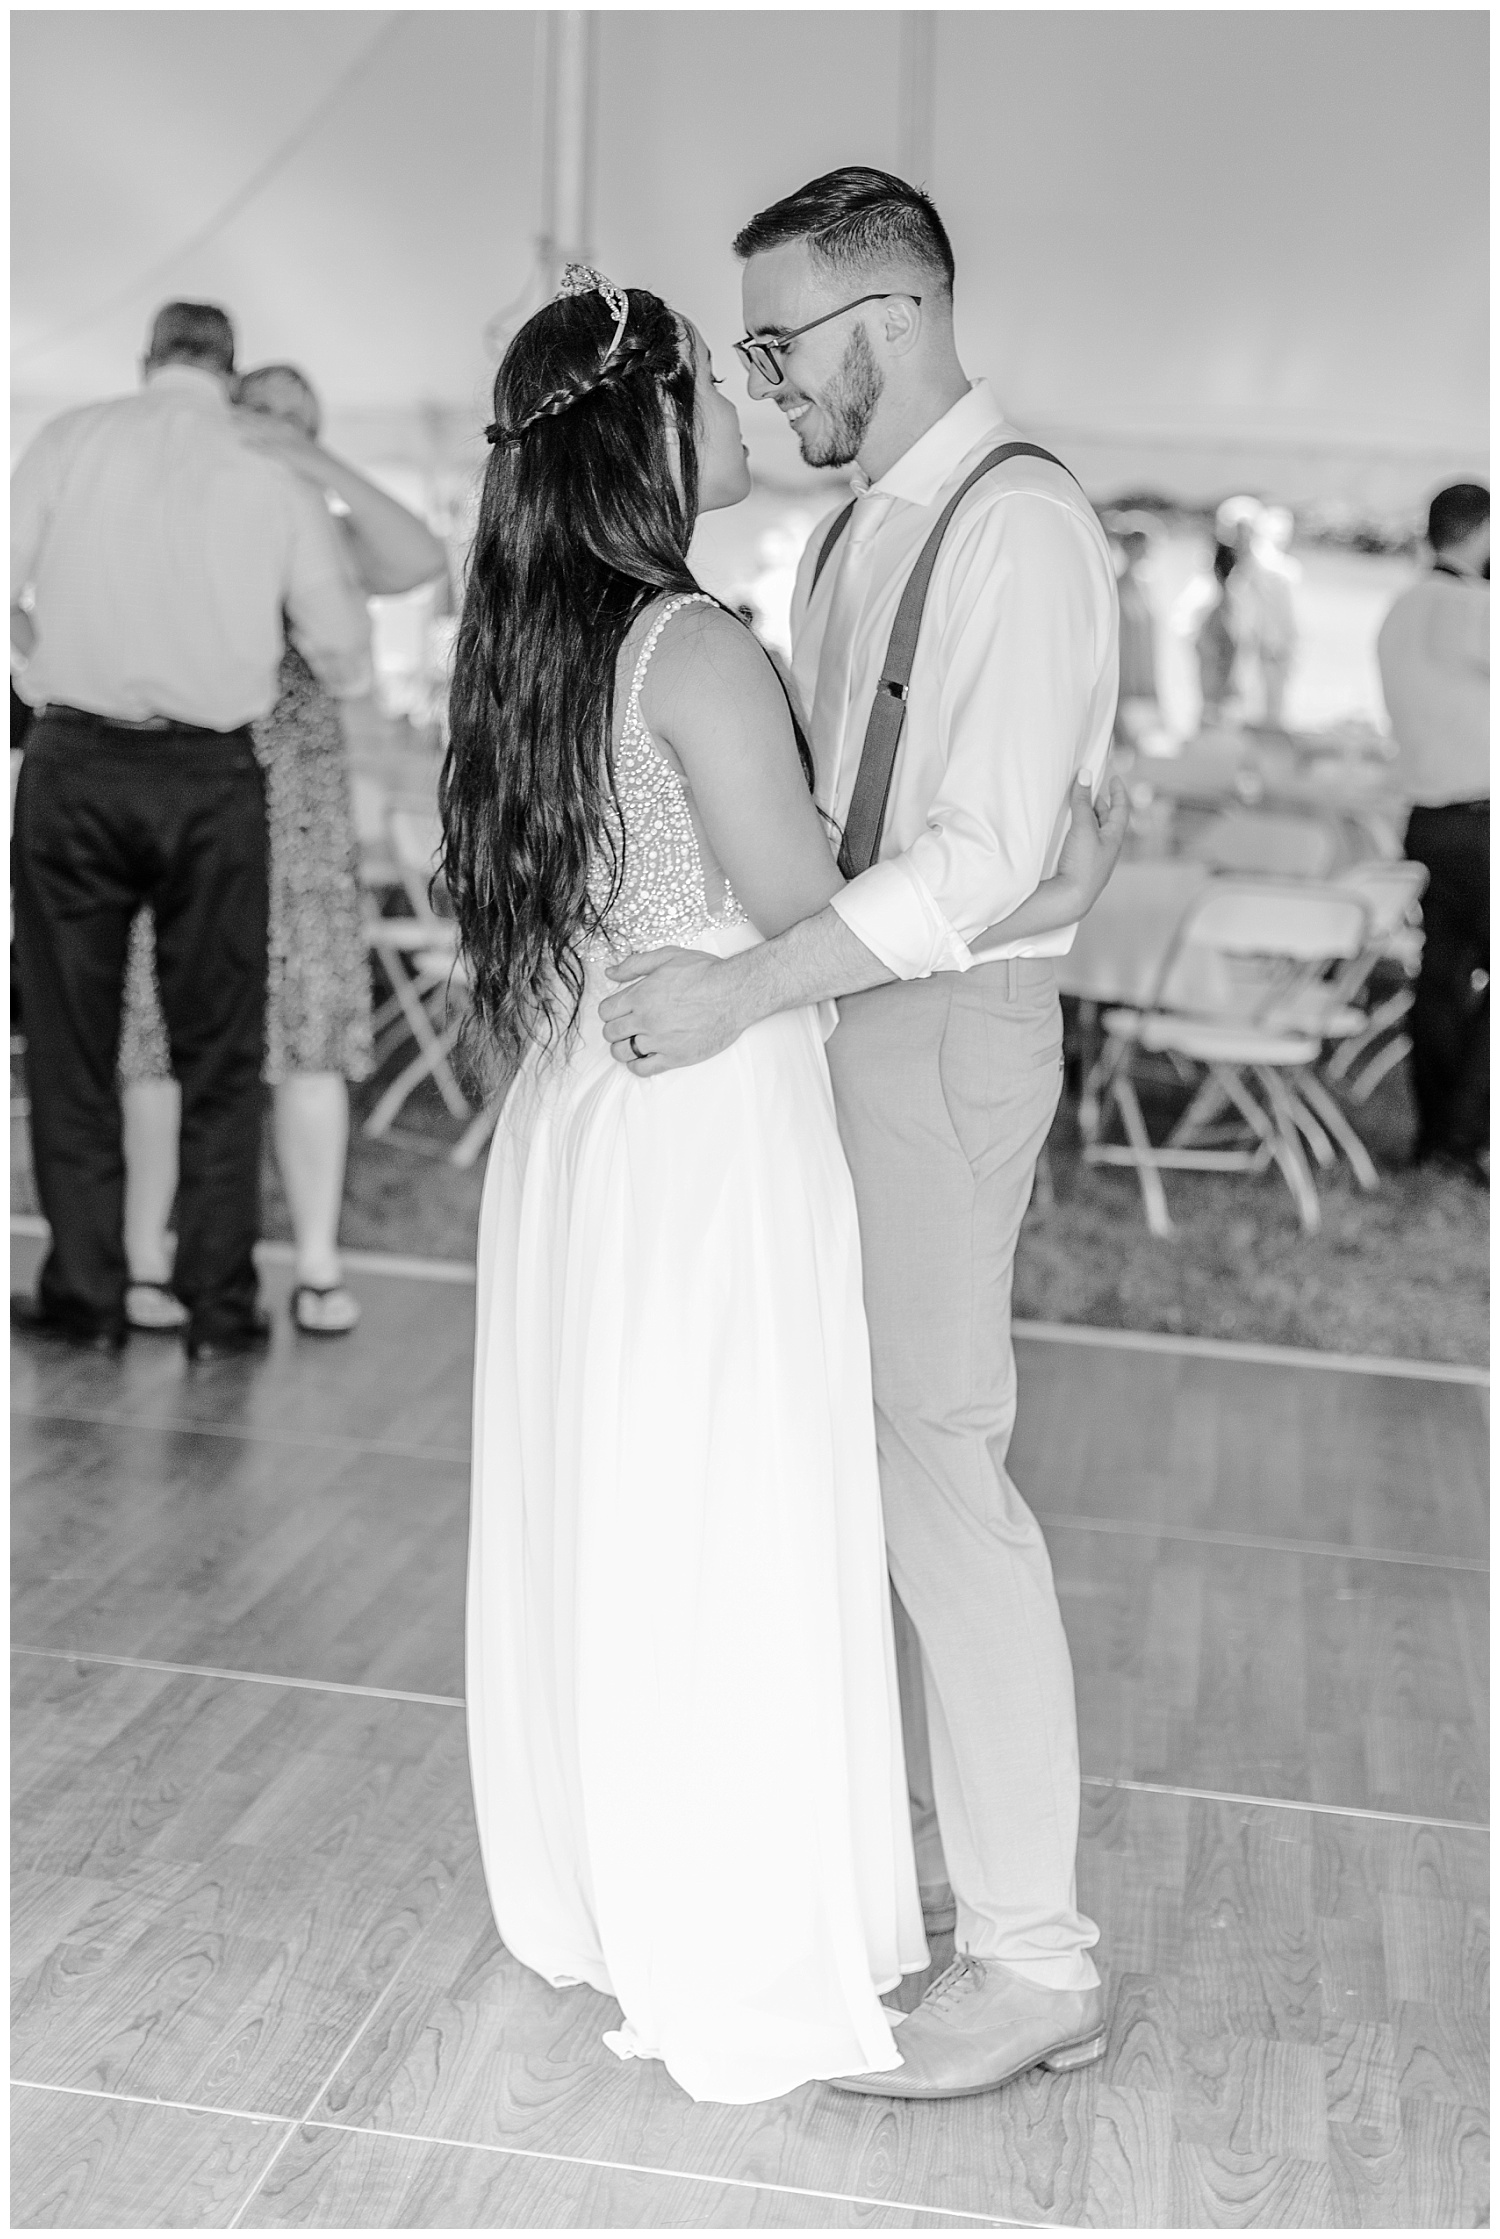 Olive green and white rustic barn wedding at burnside plantation in bethlehem pennsylvania by PA based destination wedding and lifestyle photographer Lytle photography (73).jpg